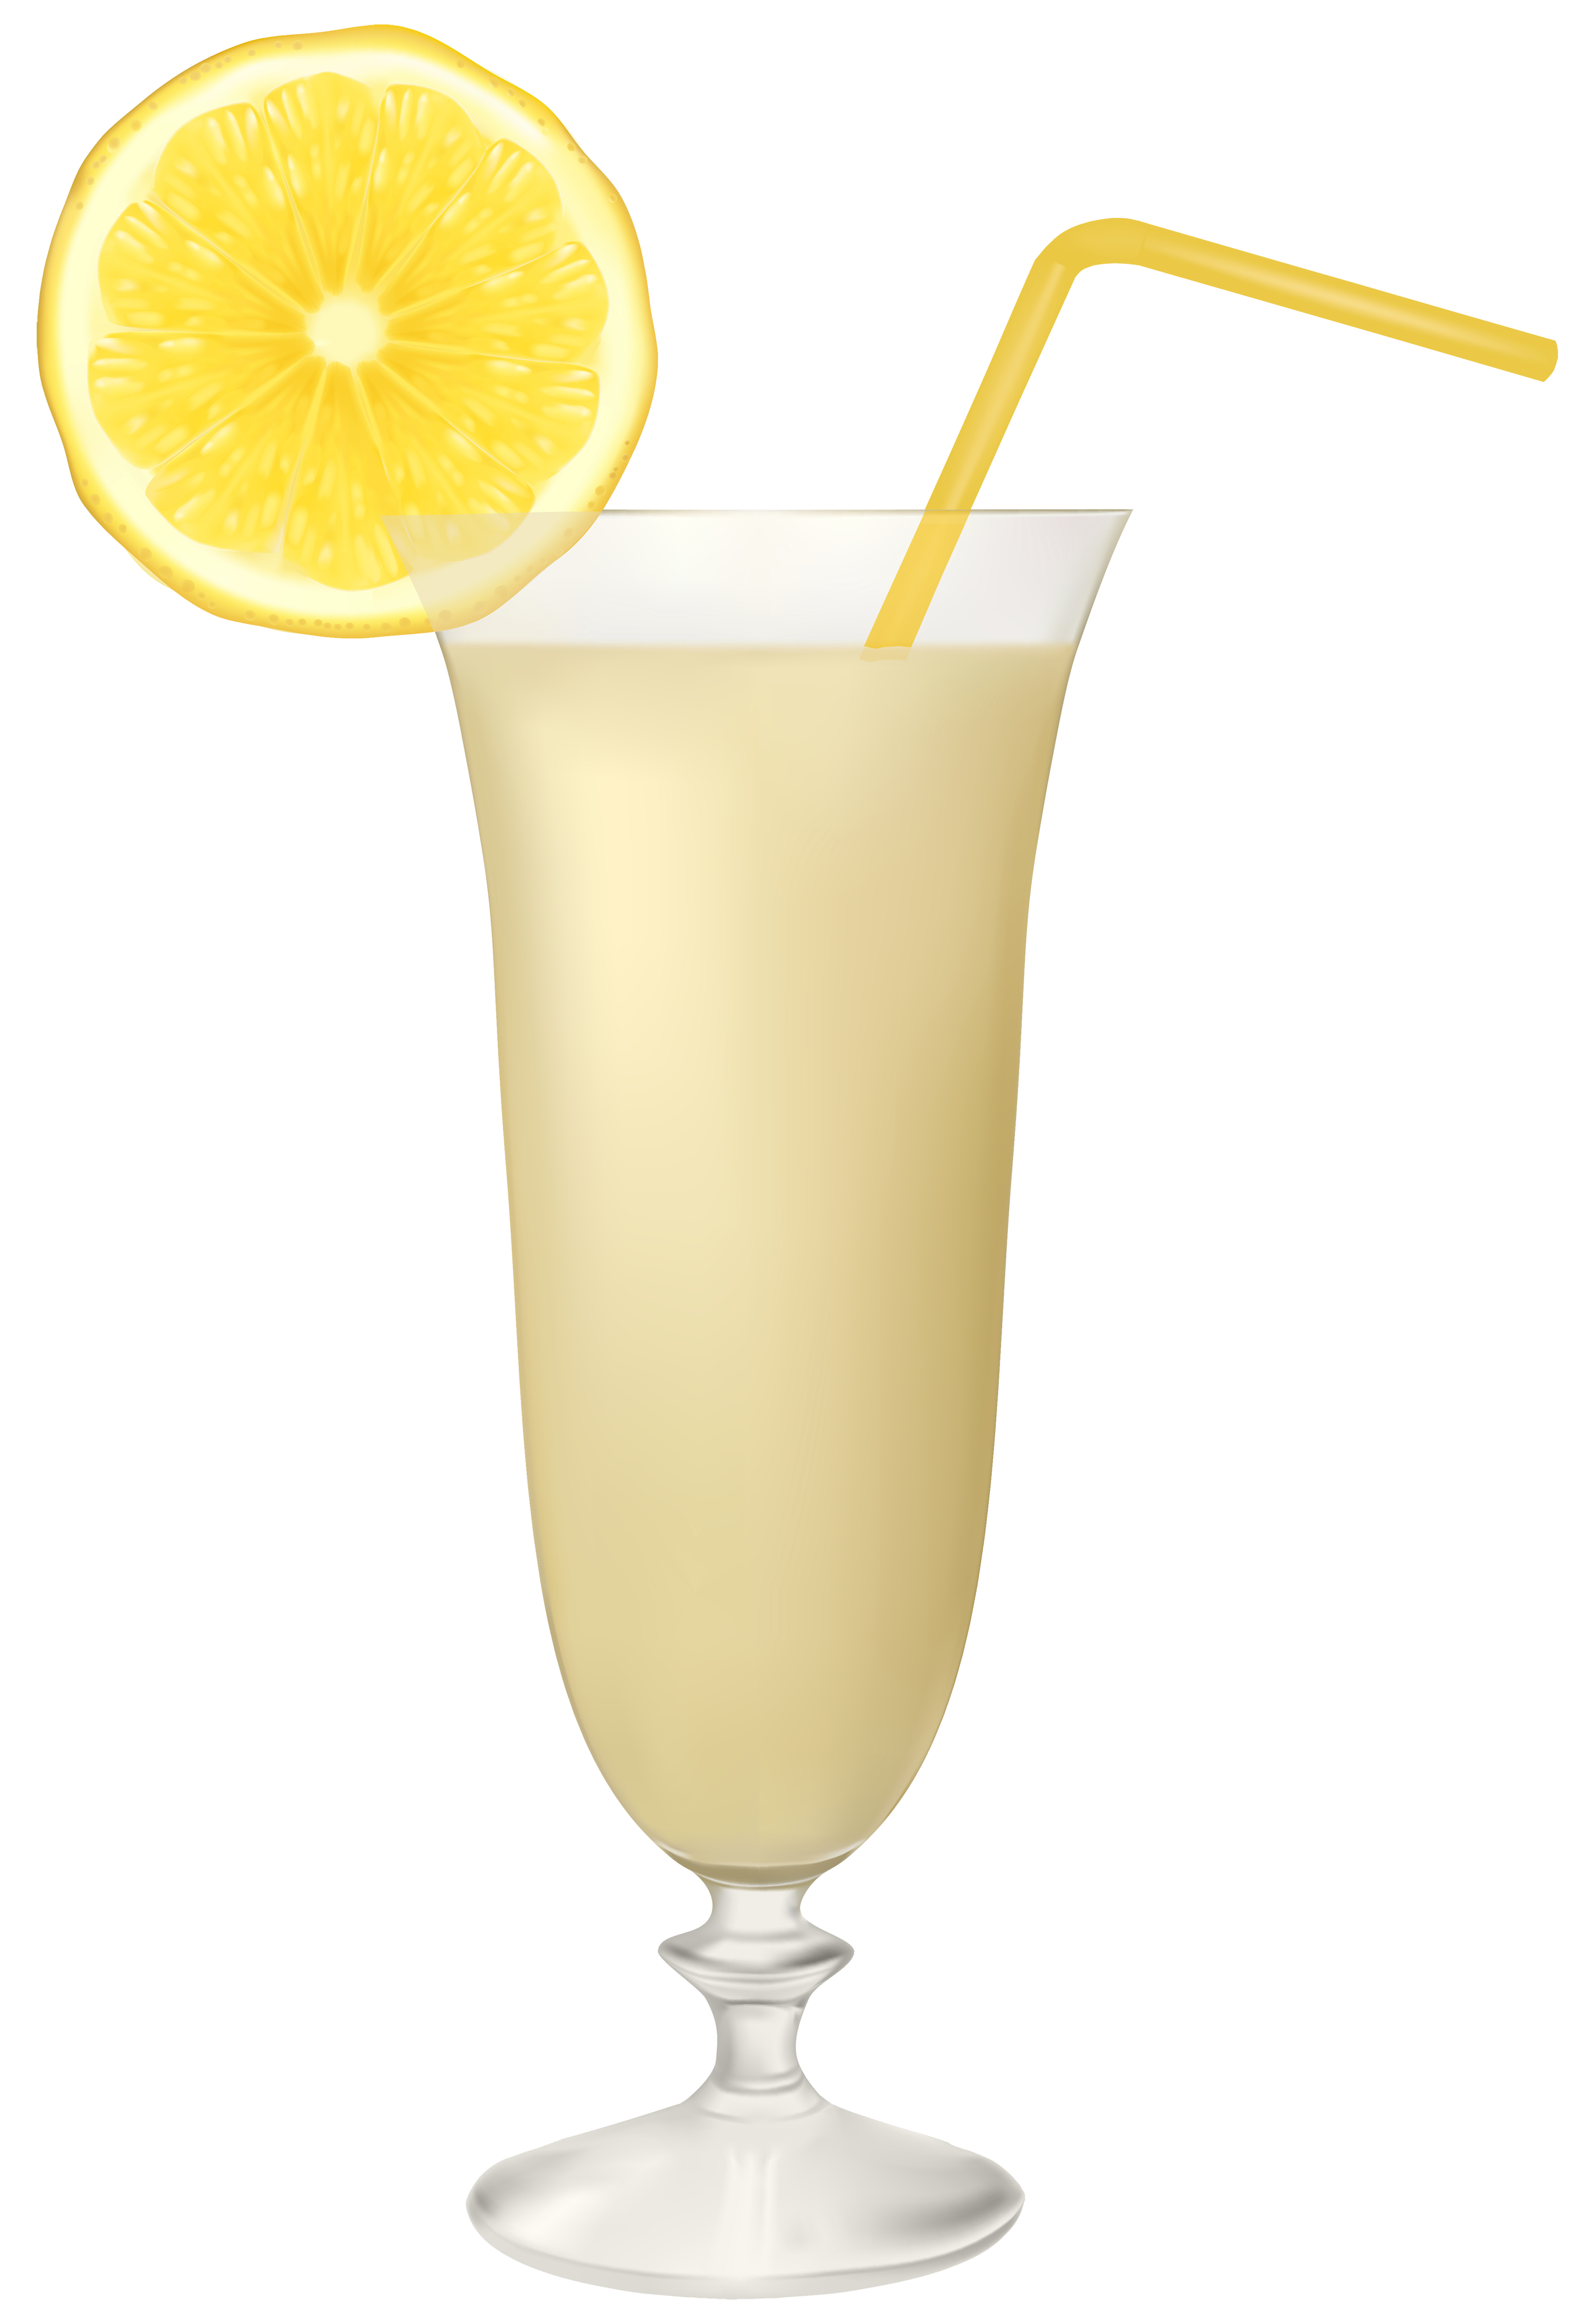 Drinking clipart cocktail glass. Png best web